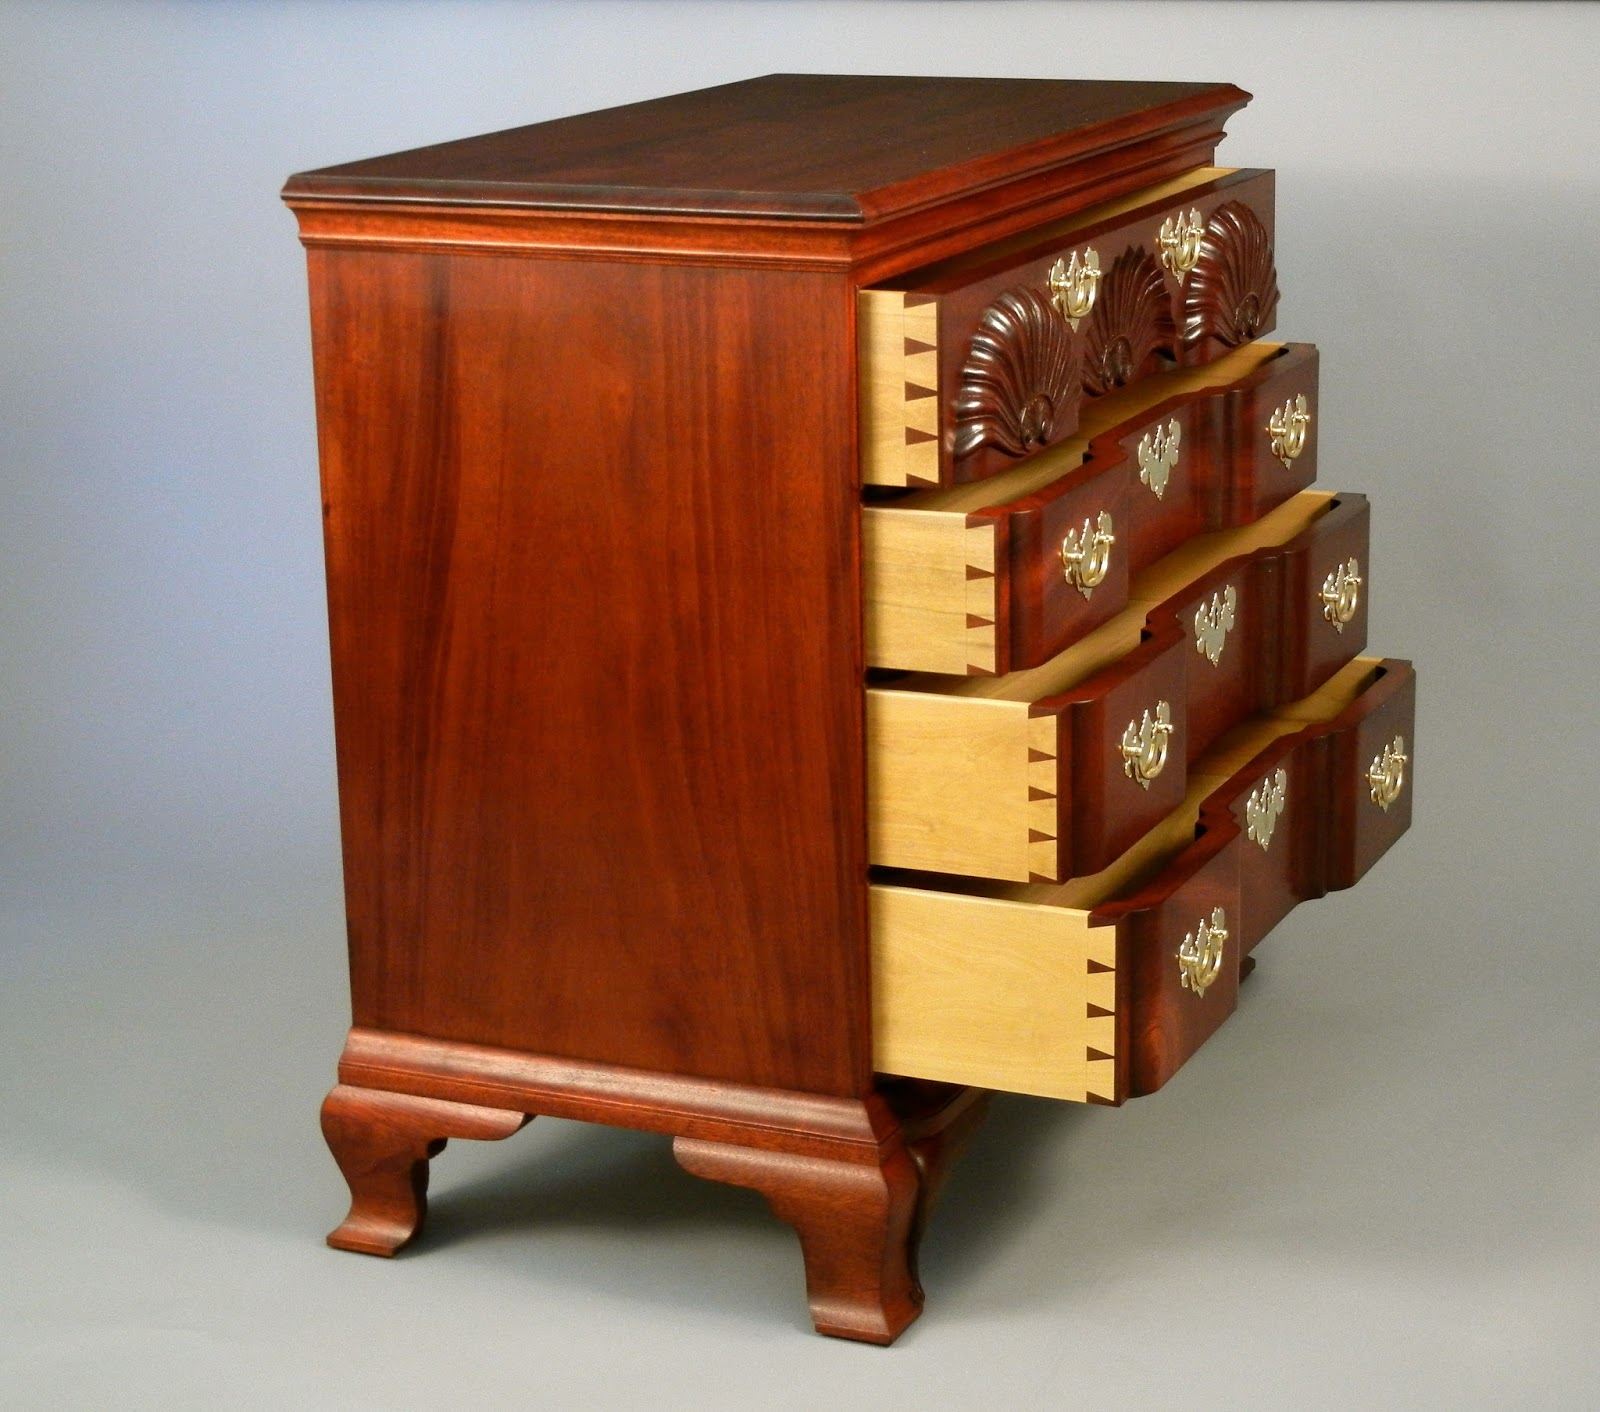 Reproduction Chippendale Chest of Drawers